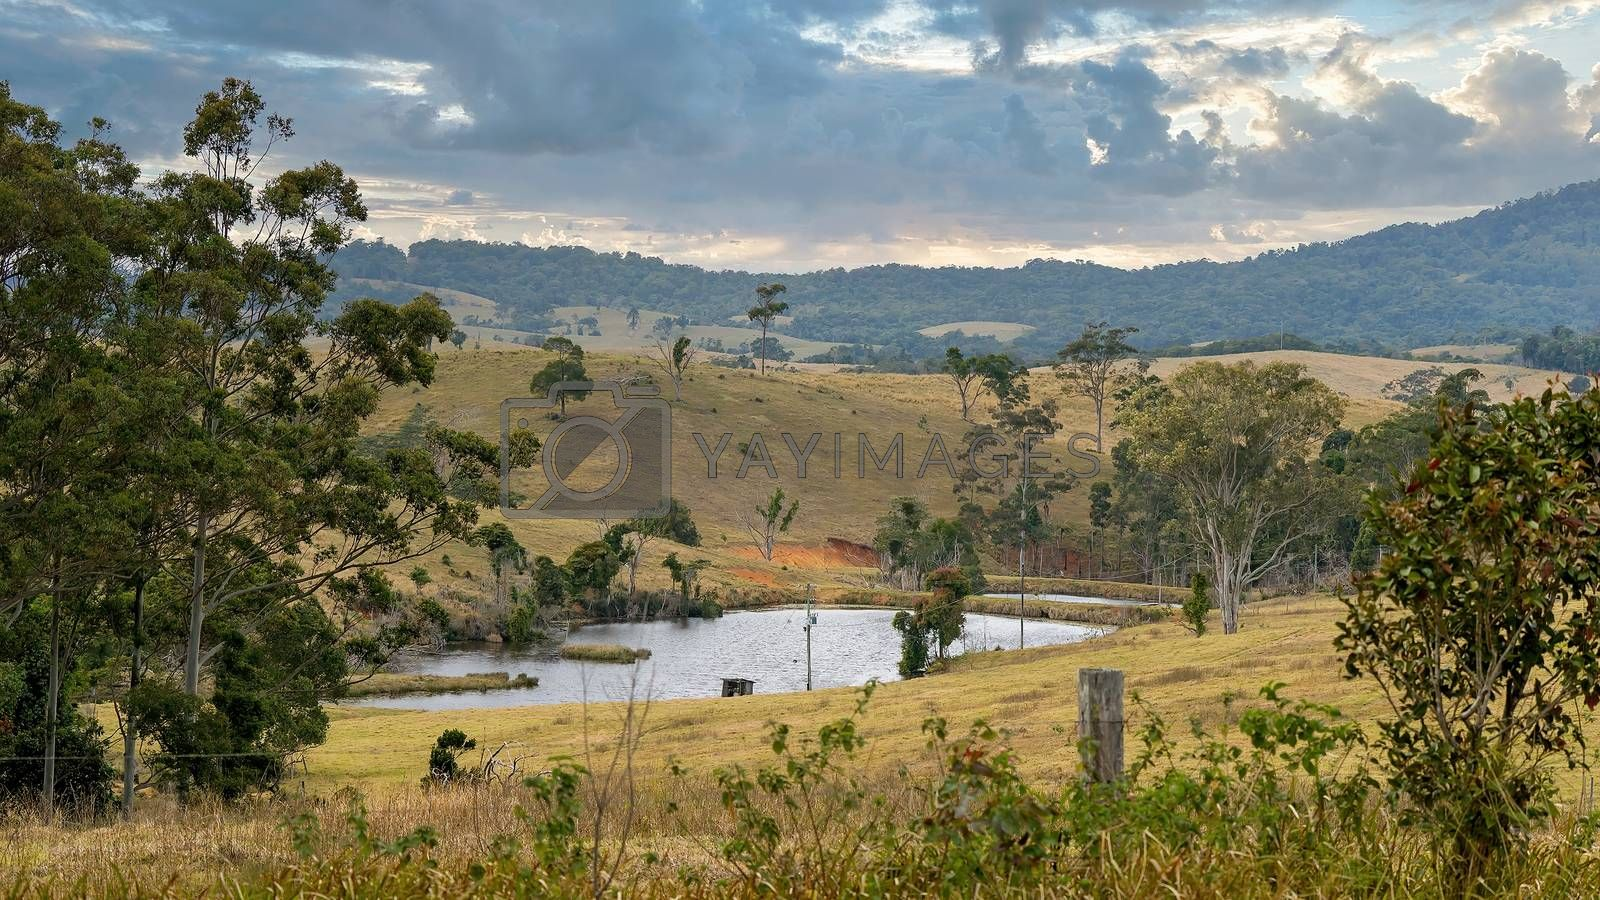 Small dams on a rural dairy property in a valley between the mountains for watering stock